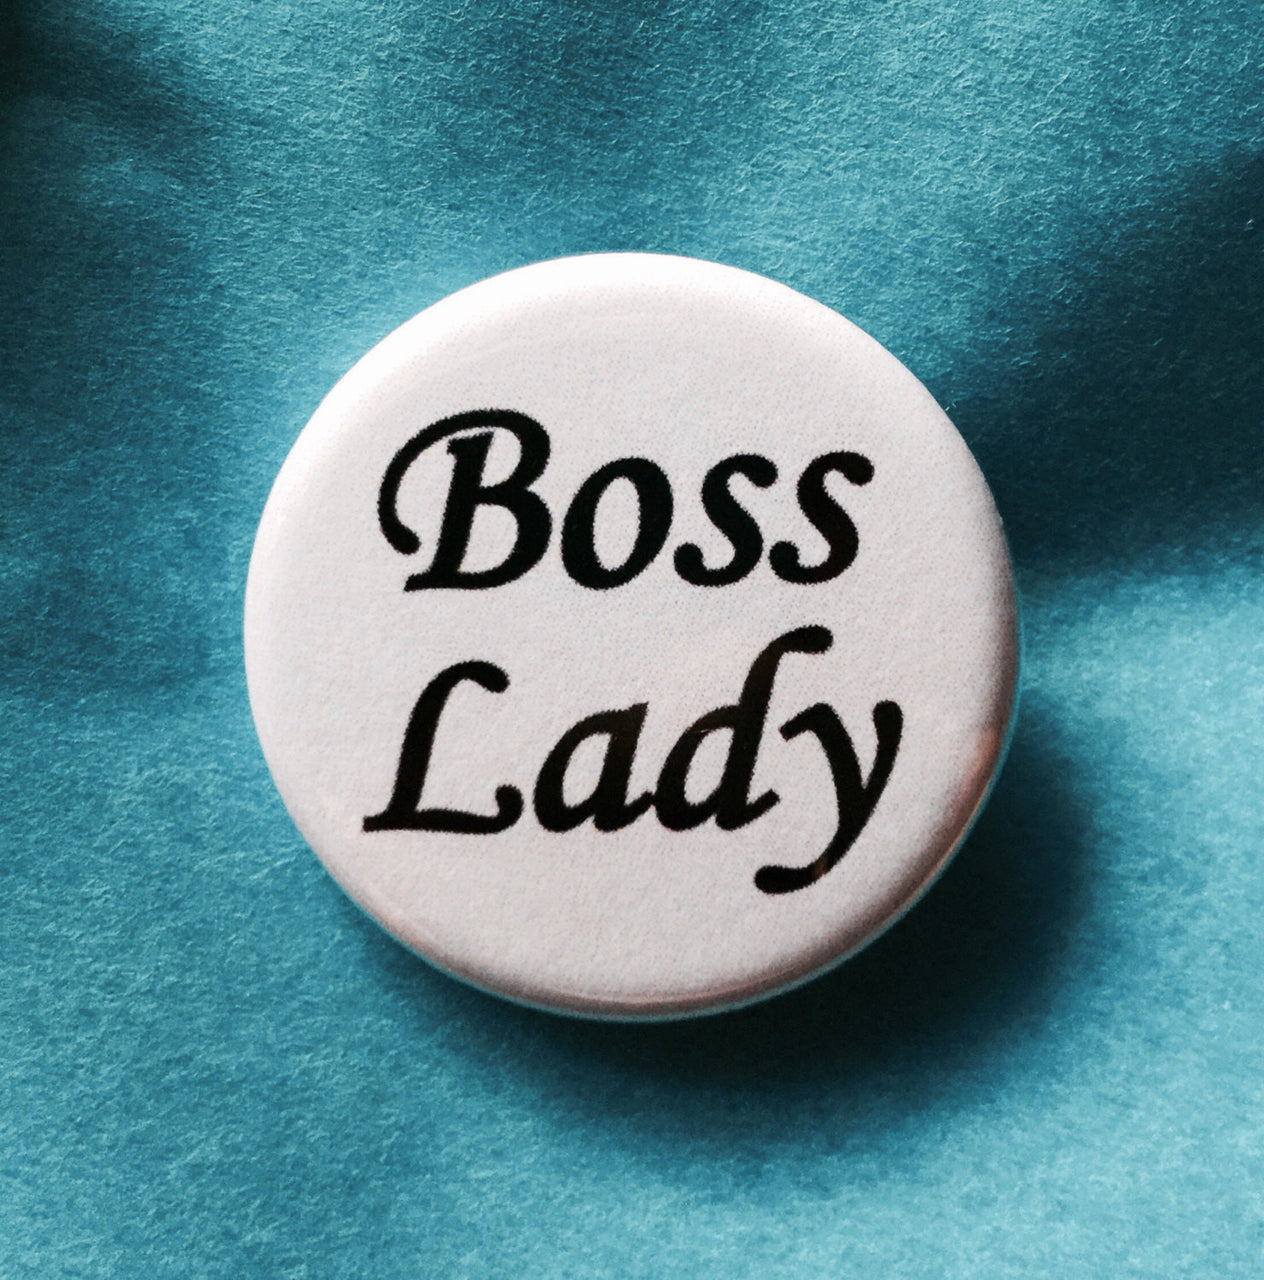 Boss lady button / Girl power button - Radical Buttons